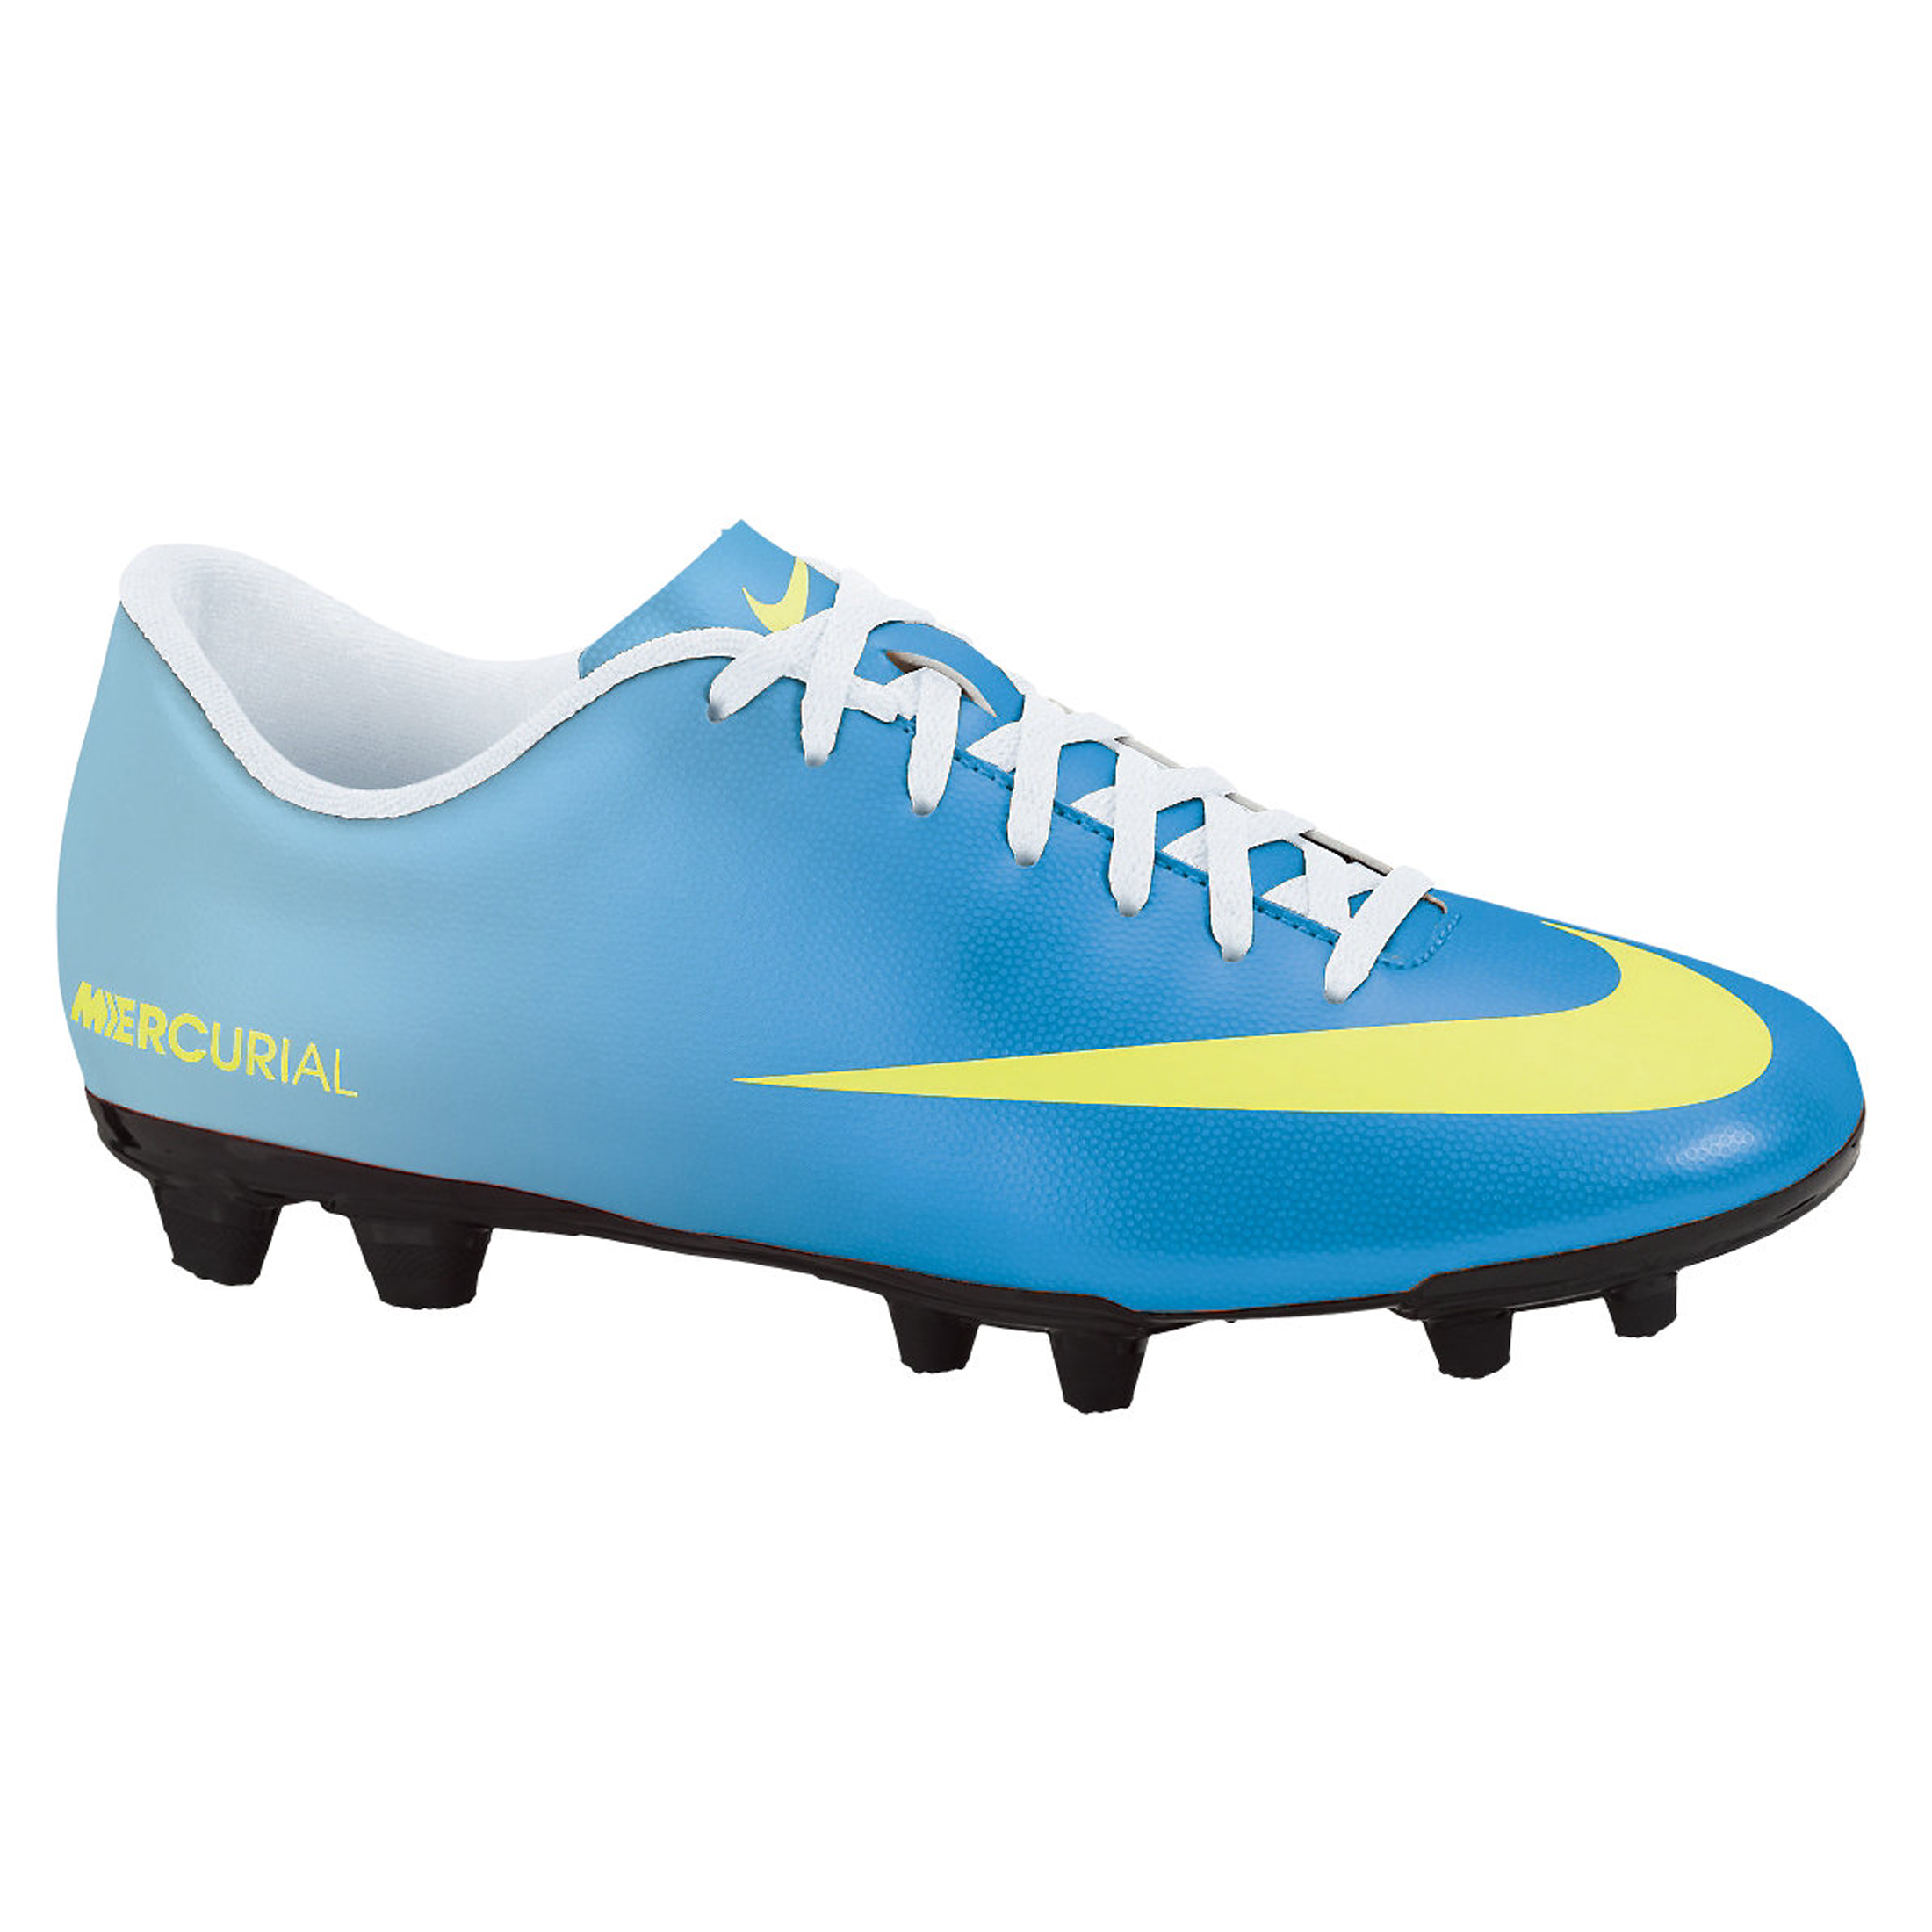 Nike Mercurial Vortex Firm Ground Football Boots - Neptune Blue/Volt/Toad Pool Blue